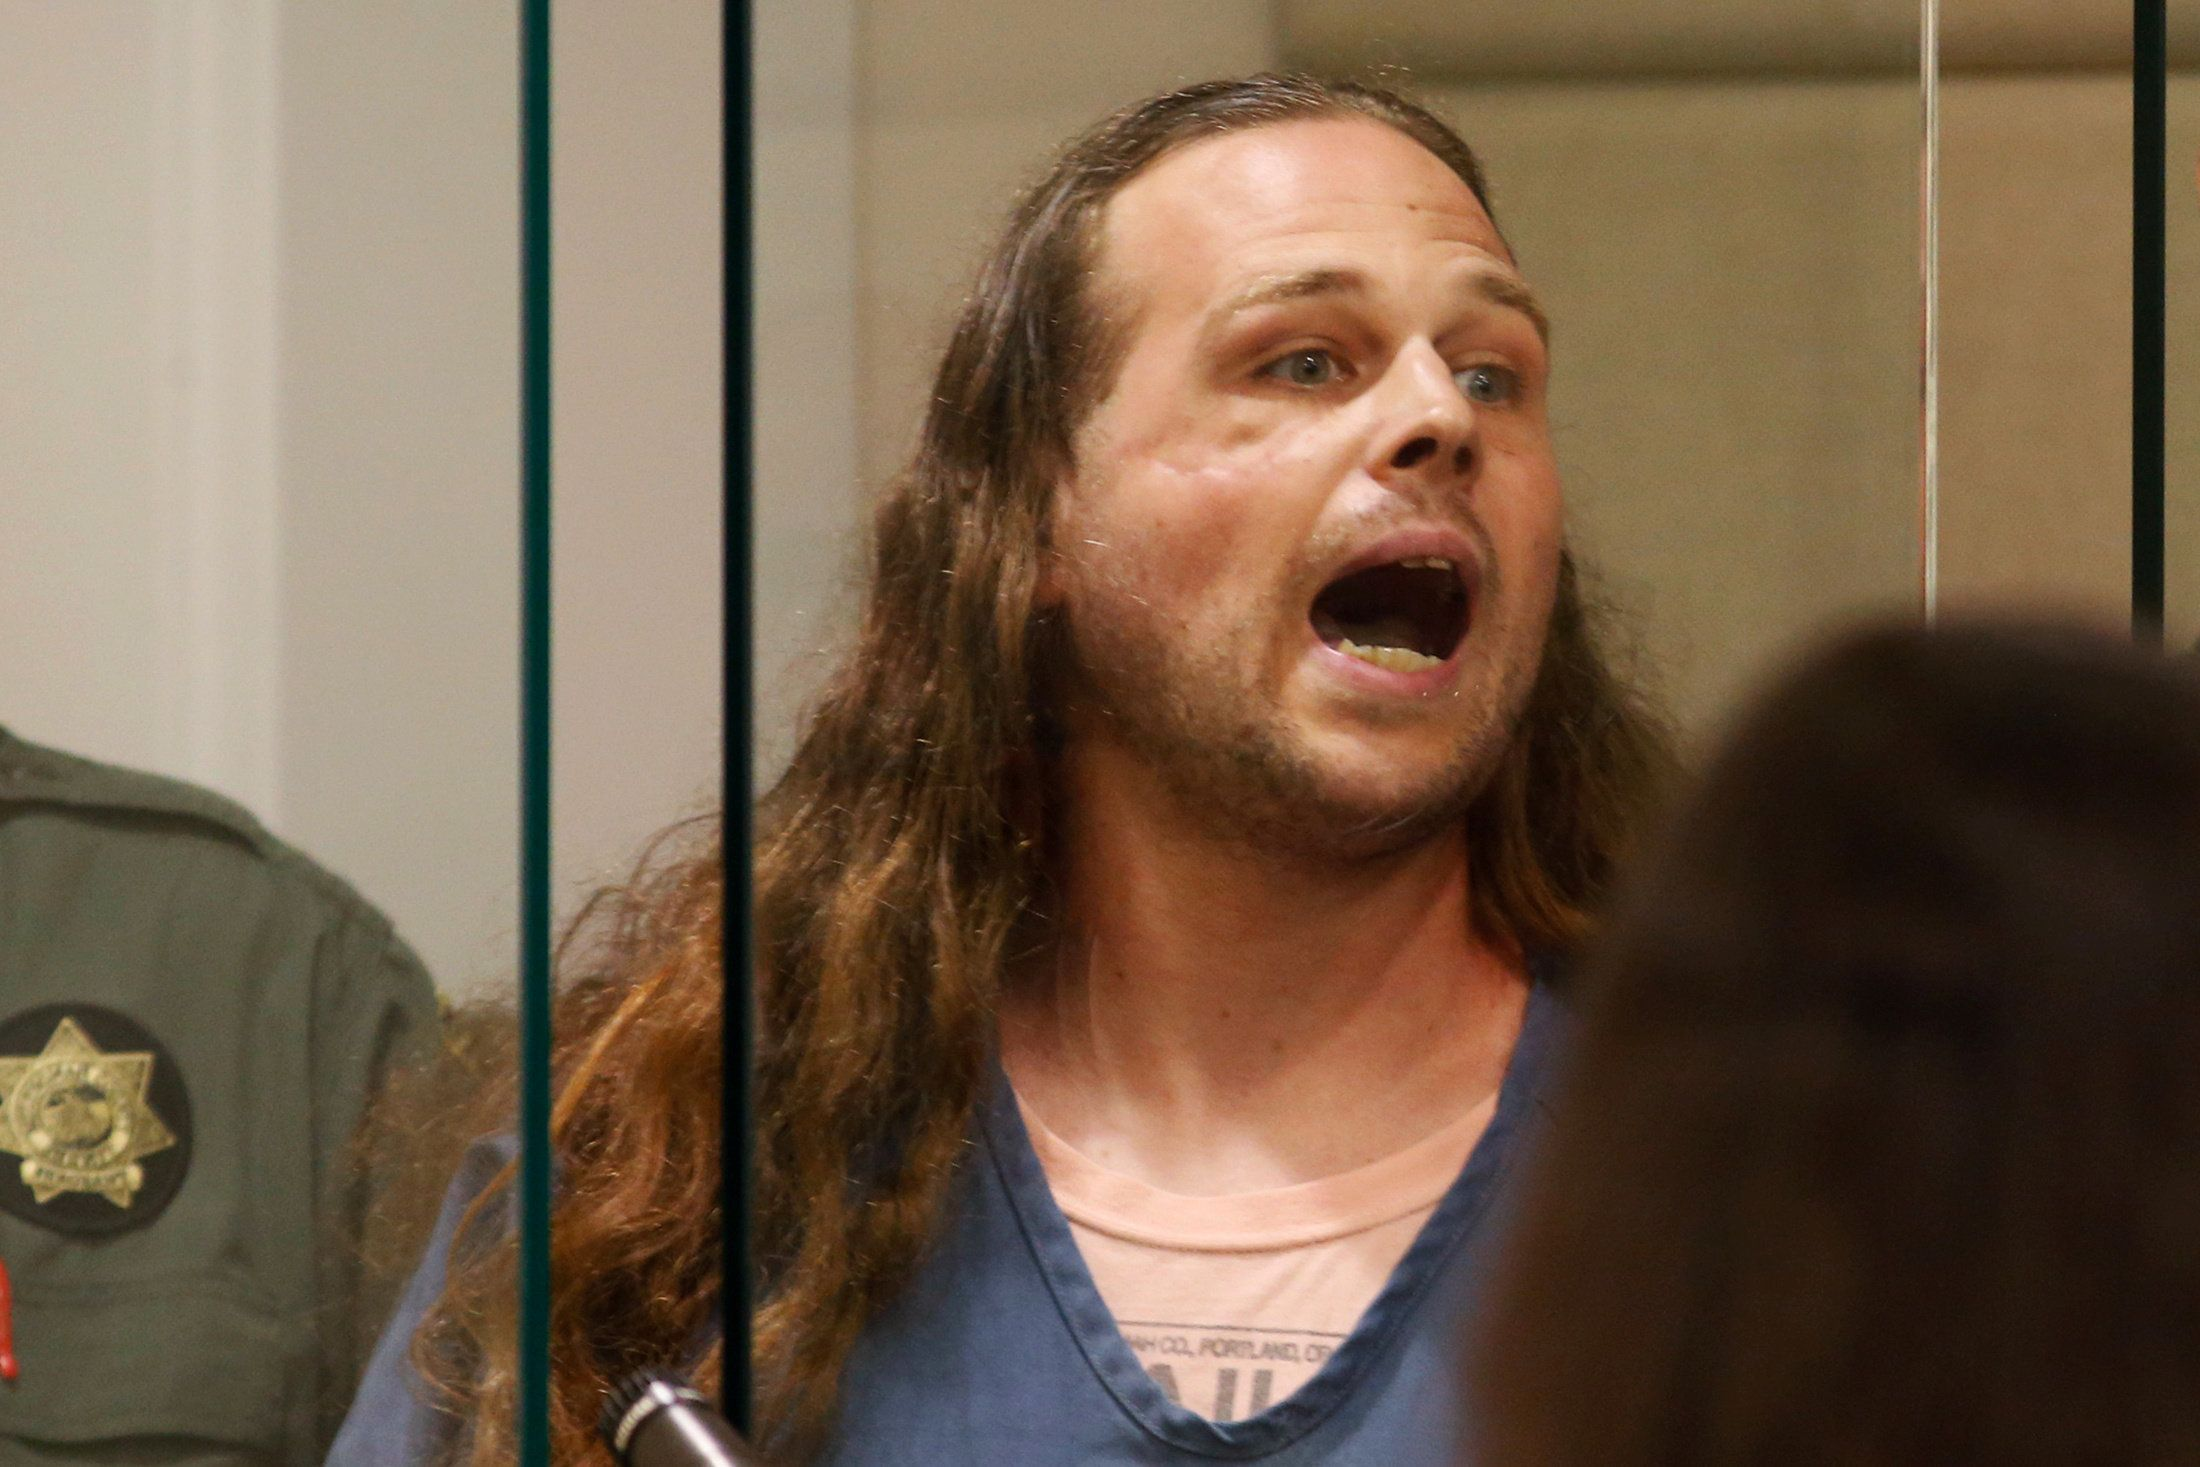 Jeremy Christian, accused of killingtwo men on a train, shouts in Multnomah County Circuit Court in Portland on May 30.